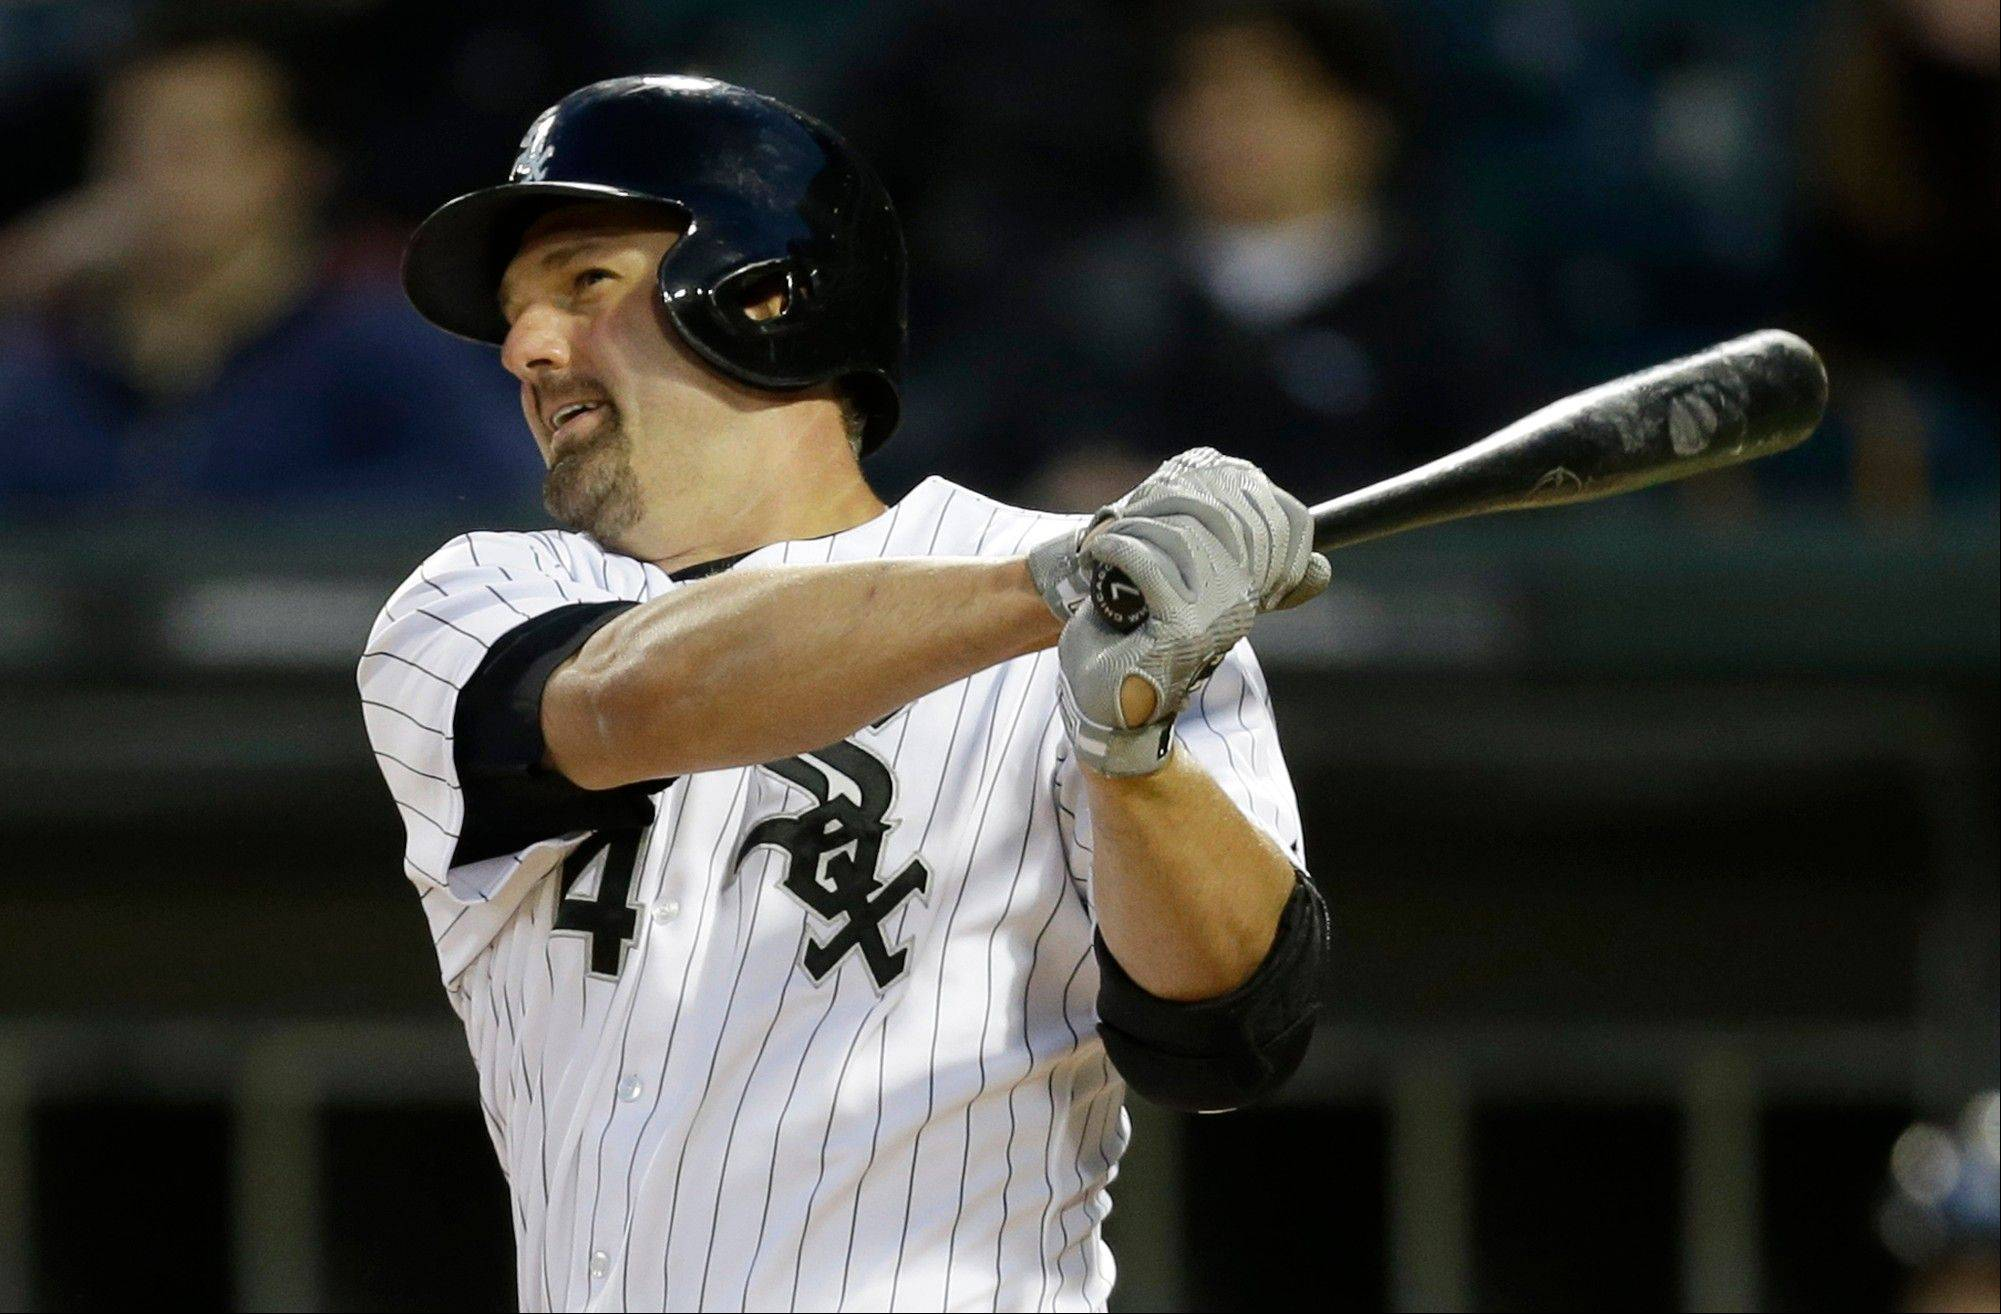 This weekend�s season-ending series against the Royals could be the final time fans will see Paul Konerko taking his cuts for the White Sox.